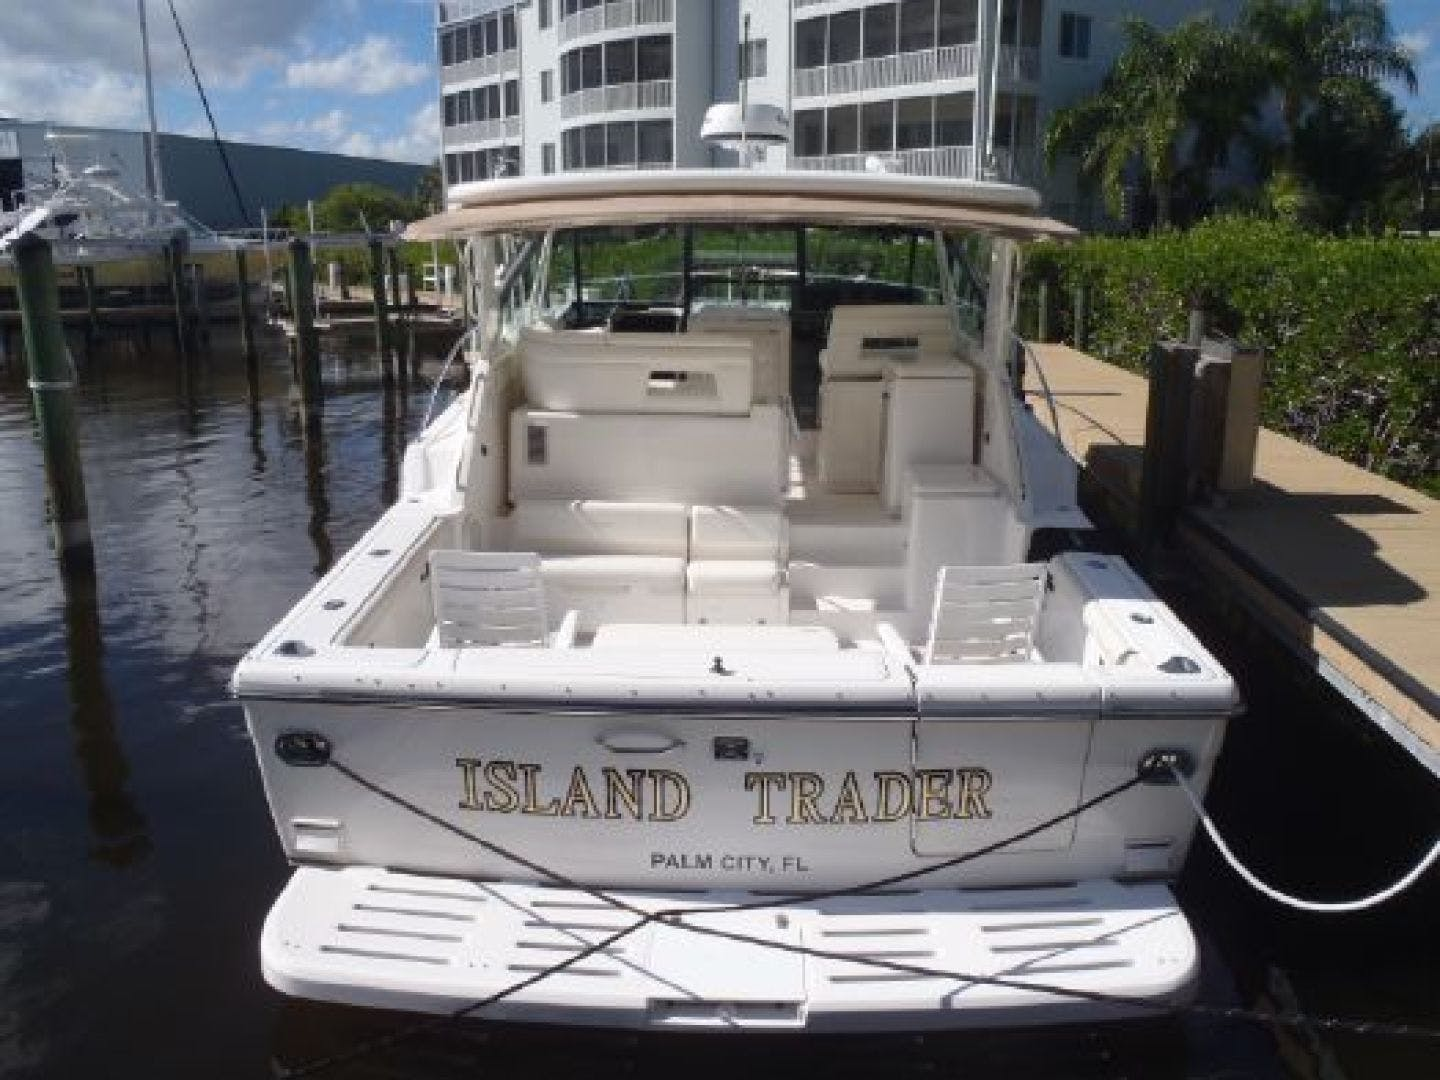 2002 Tiara Yachts 41' 41 Open Island Trader | Picture 4 of 41